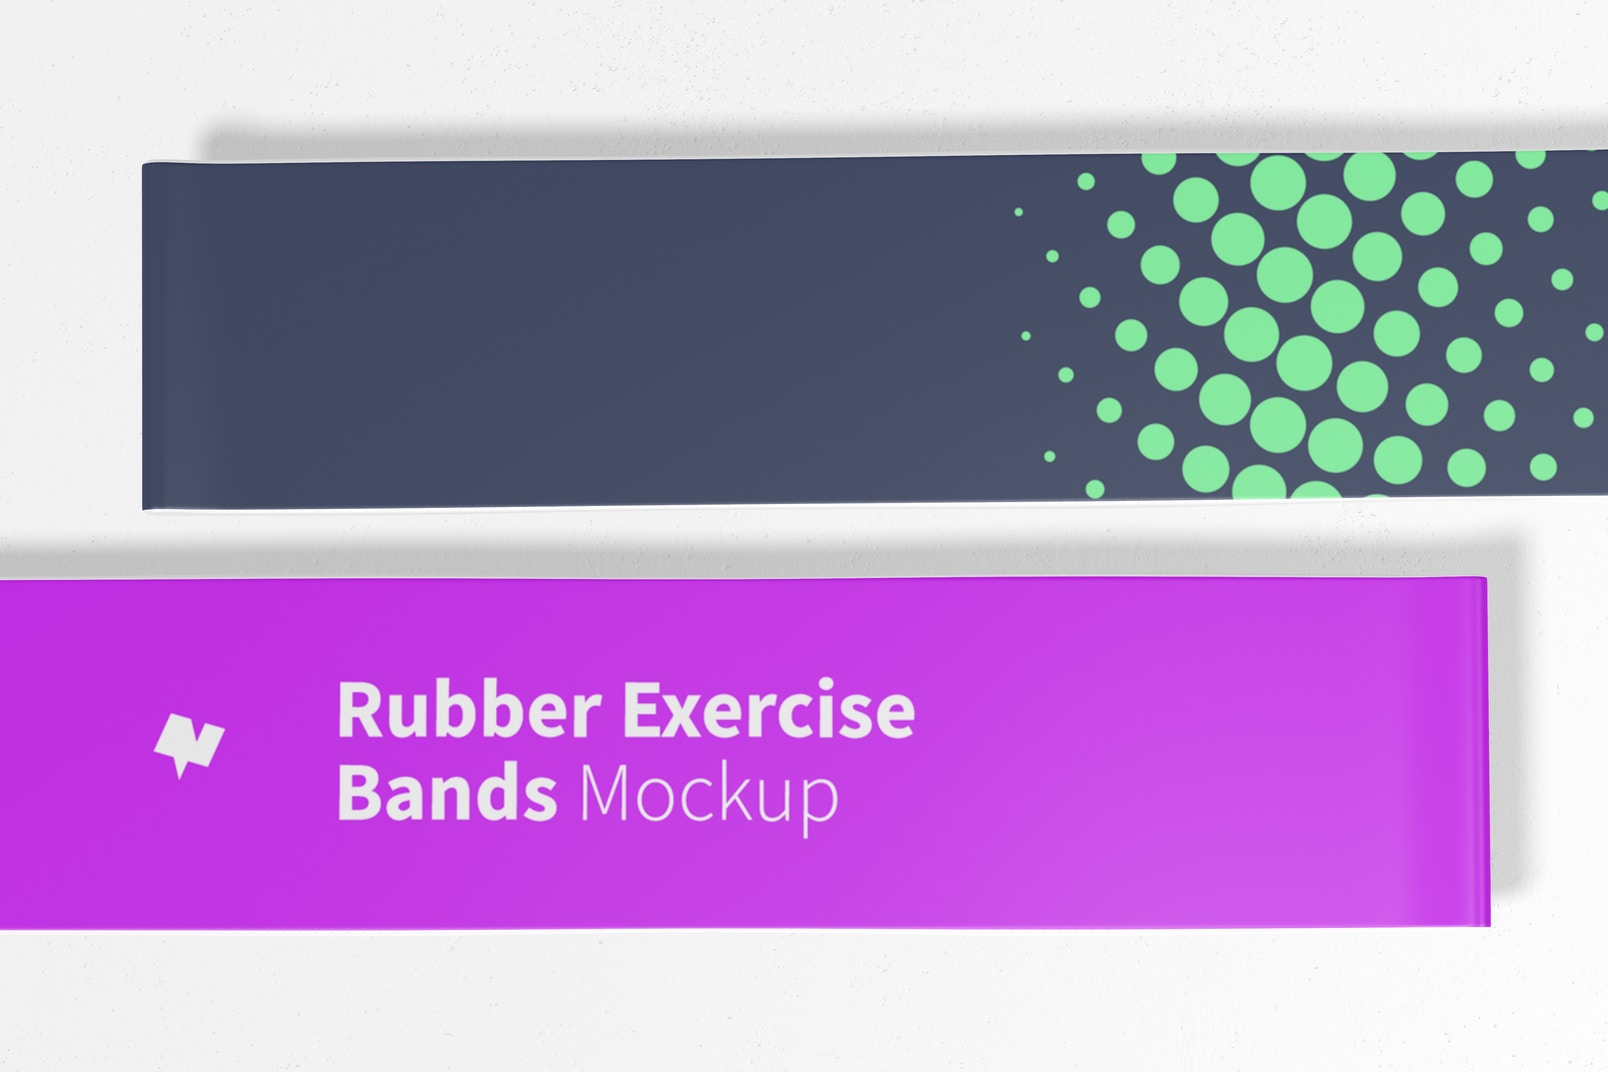 Rubber Exercise Bands Mockup, Close Up